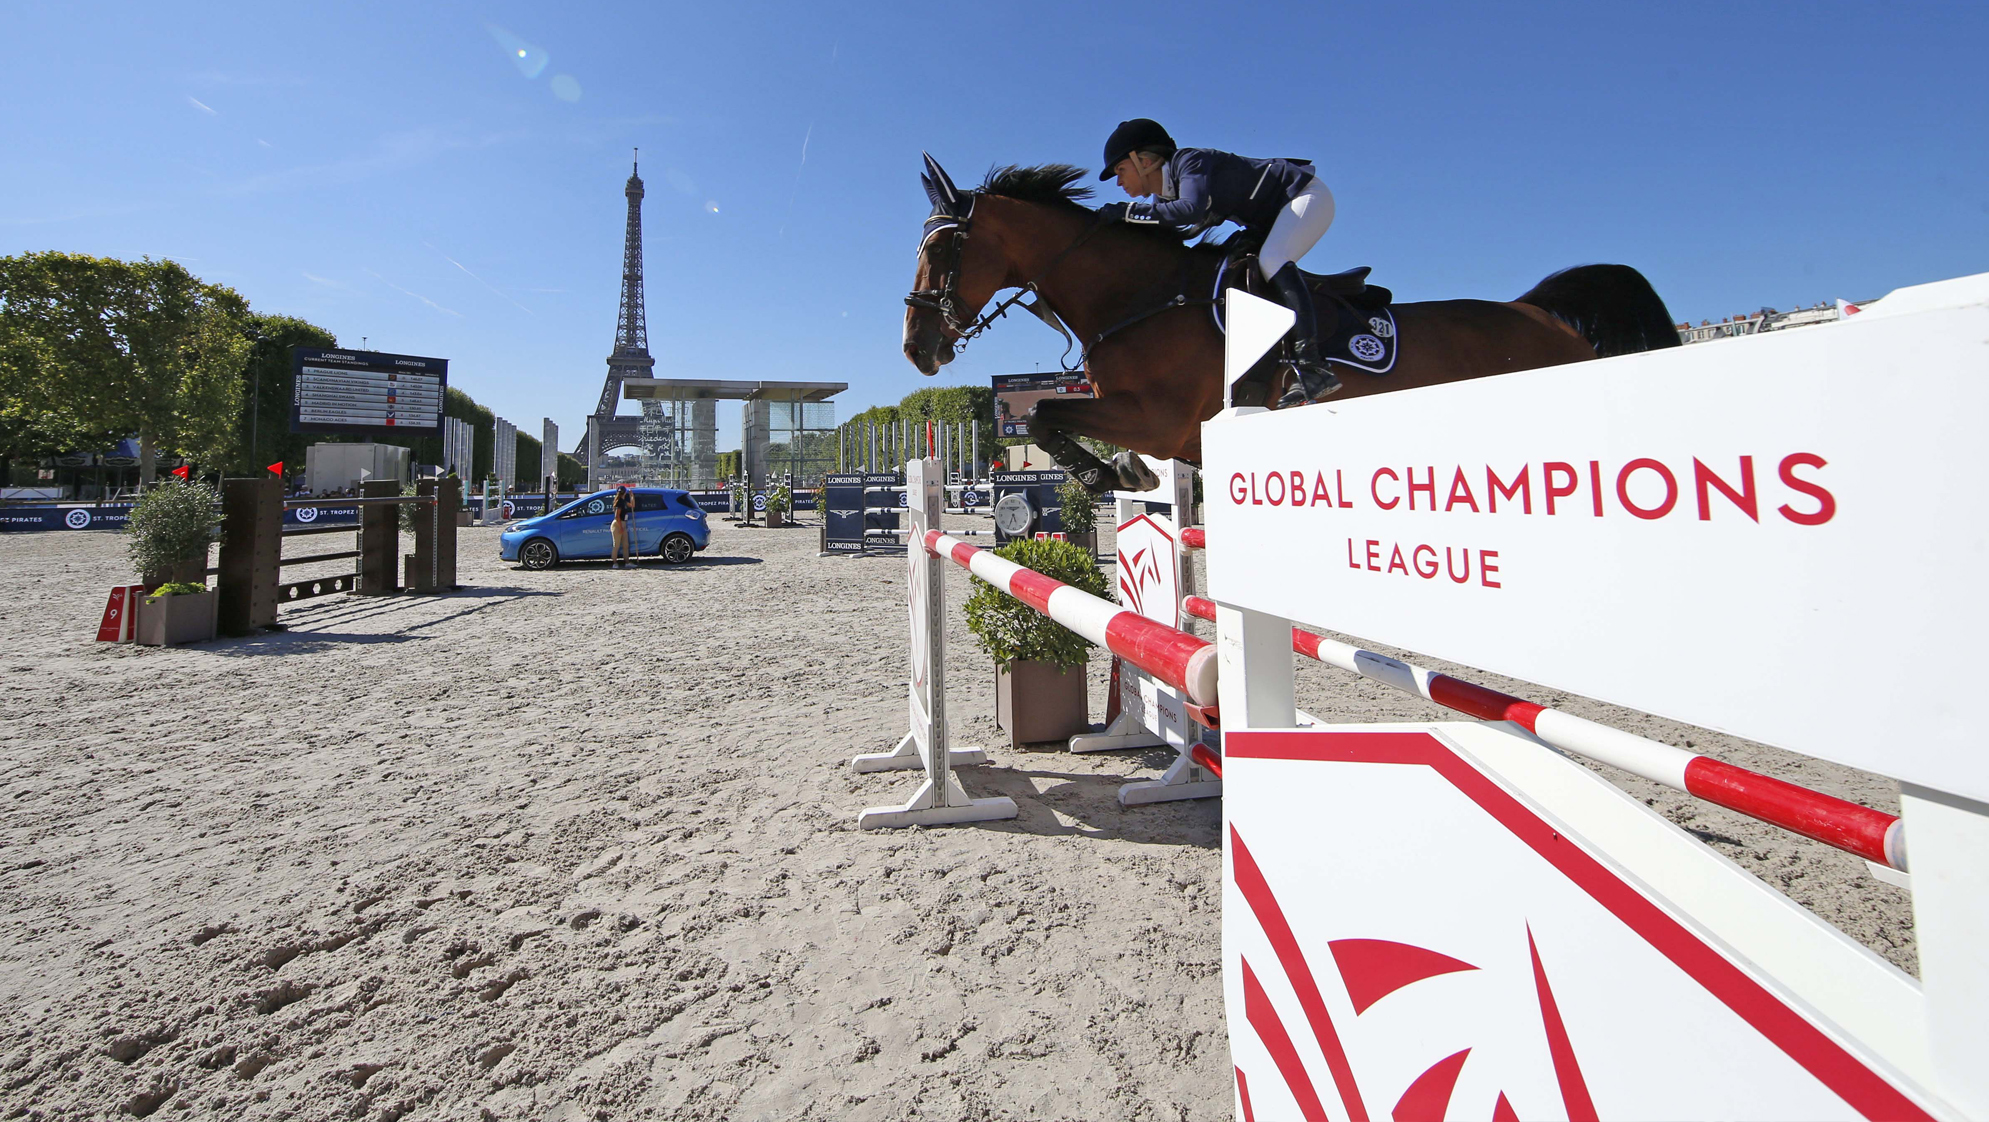 St Tropez Pirates Take the Helm at GCL Paris